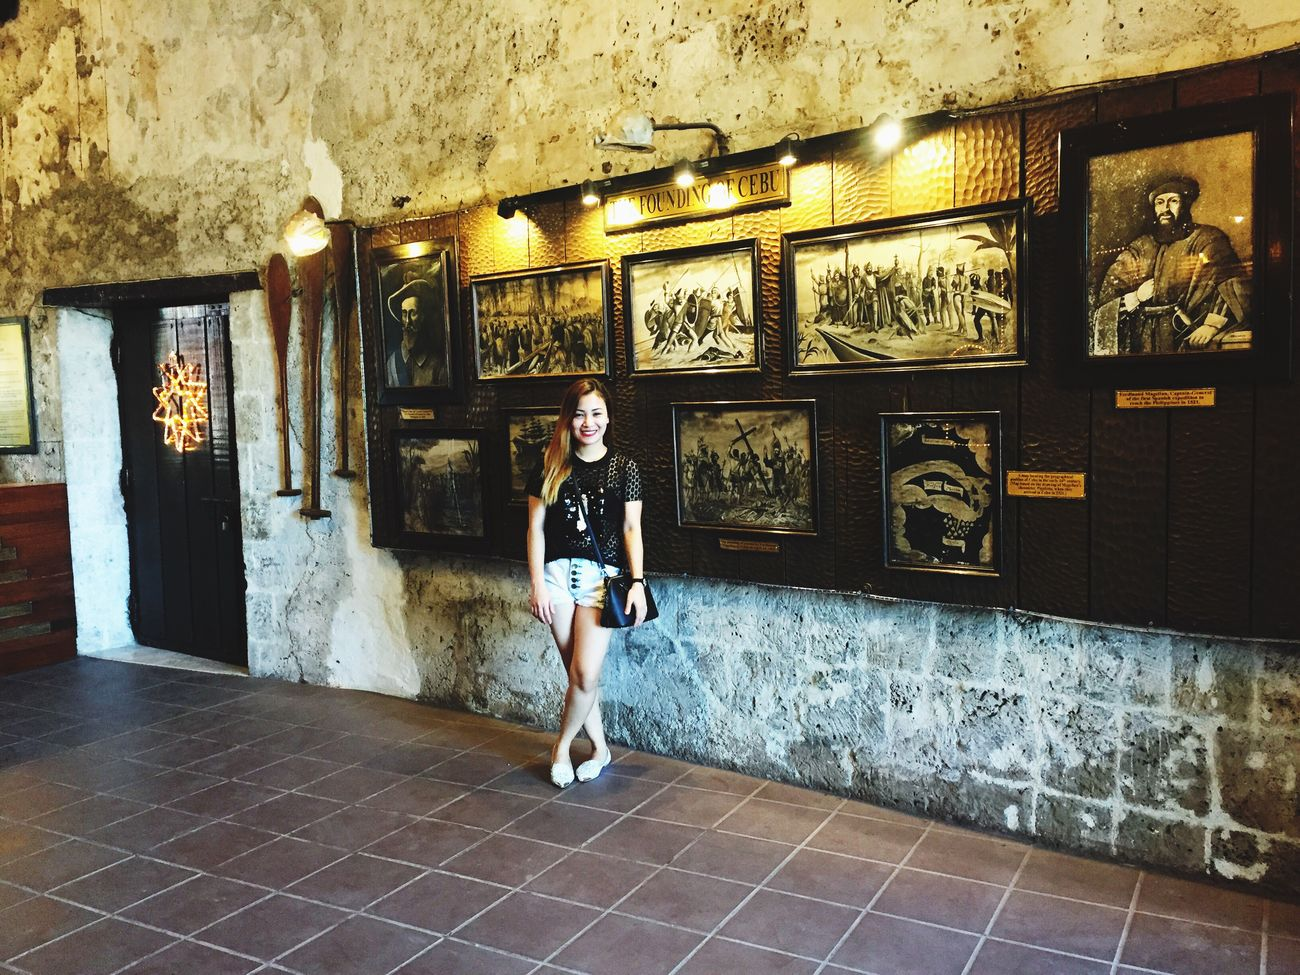 Port San Pedro Cebu city. 💋 Museum Old Town Old Buildings Vacation Pic! Single Life  Single And Loving It Tour Old Photos Visit Ancient Anile Women Behind Me Grizzy People In The Town Anile Explore New Things In Life Experiences Unexpected Things Tho Satisfaction